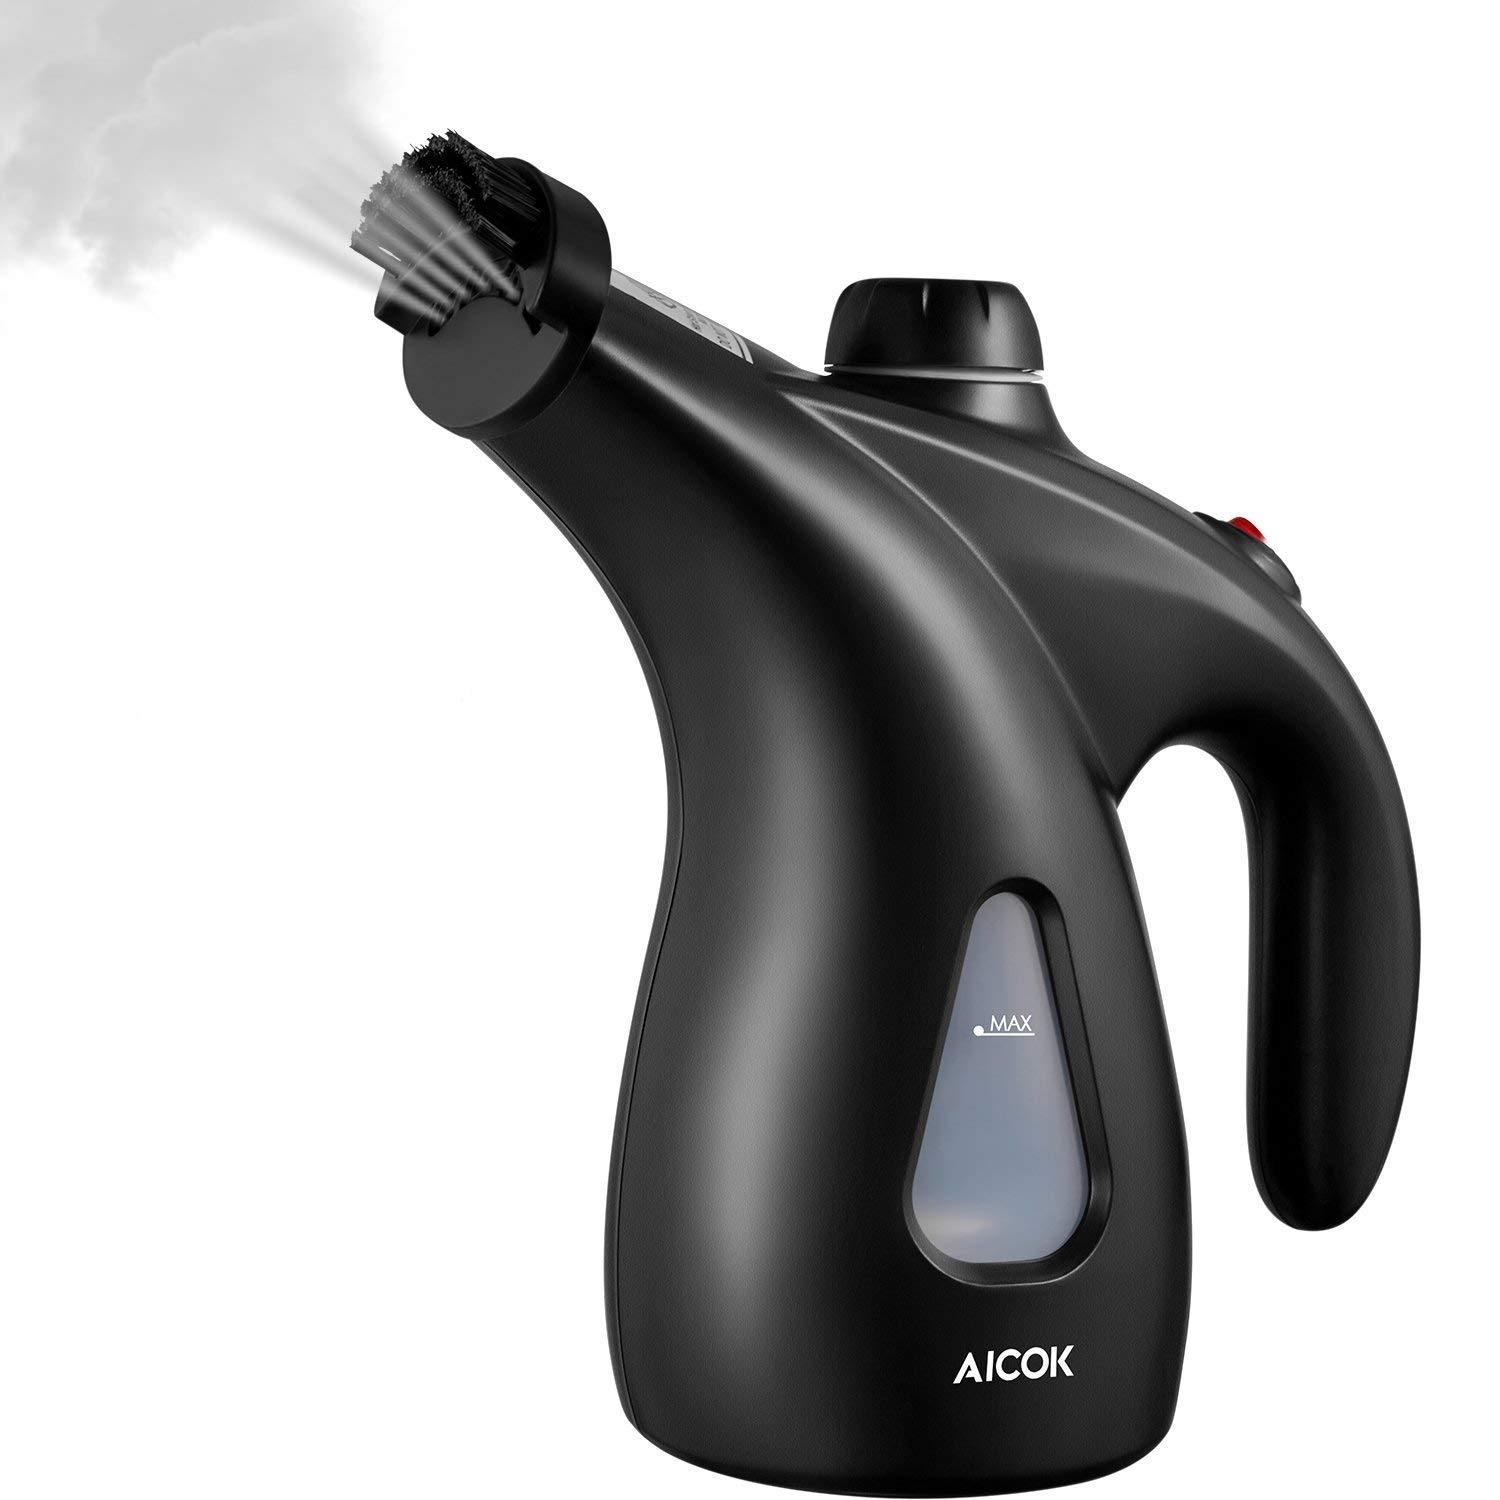 Aicok Clothes Steamer, 900W Powerful Travel Steamer,200ML High Capacity Garment Steamer Perfect for Home and Travel, Portable Handheld Fabric Steamer with Brush and Travel Pouch, Black